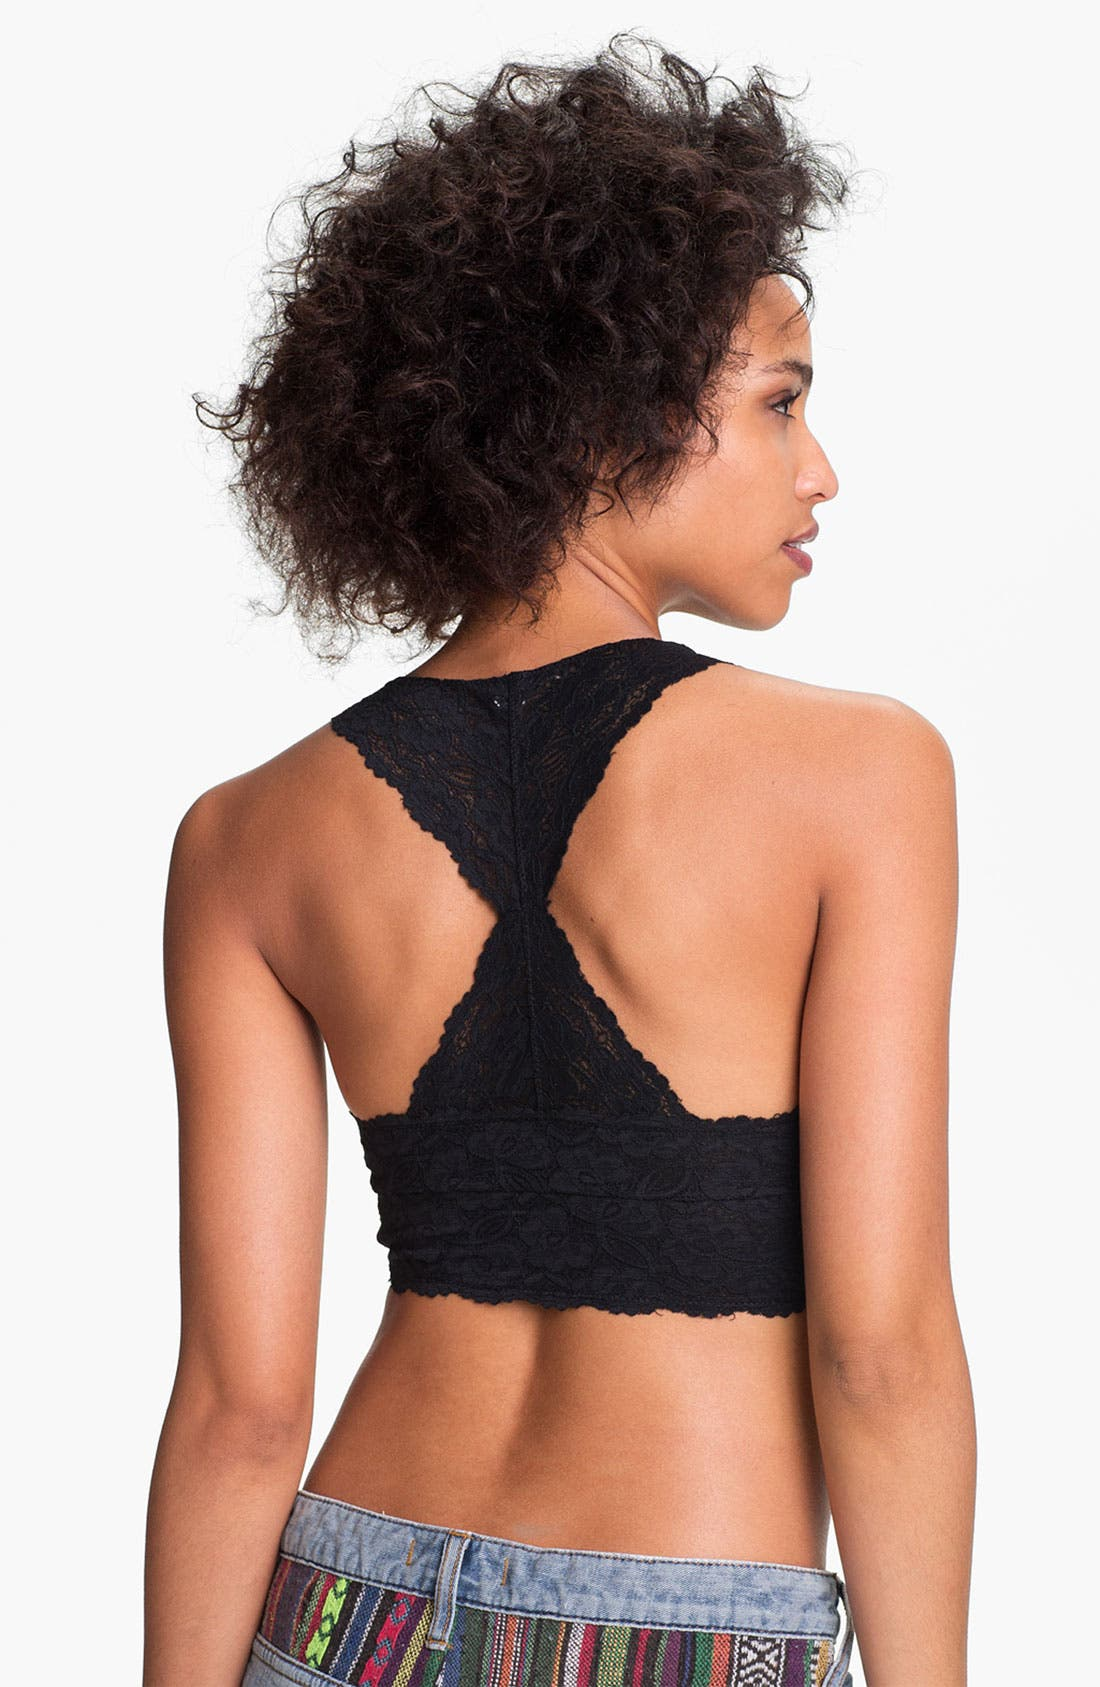 Alternate Image 1 Selected - Free People Racerback Galloon Lace Bralette